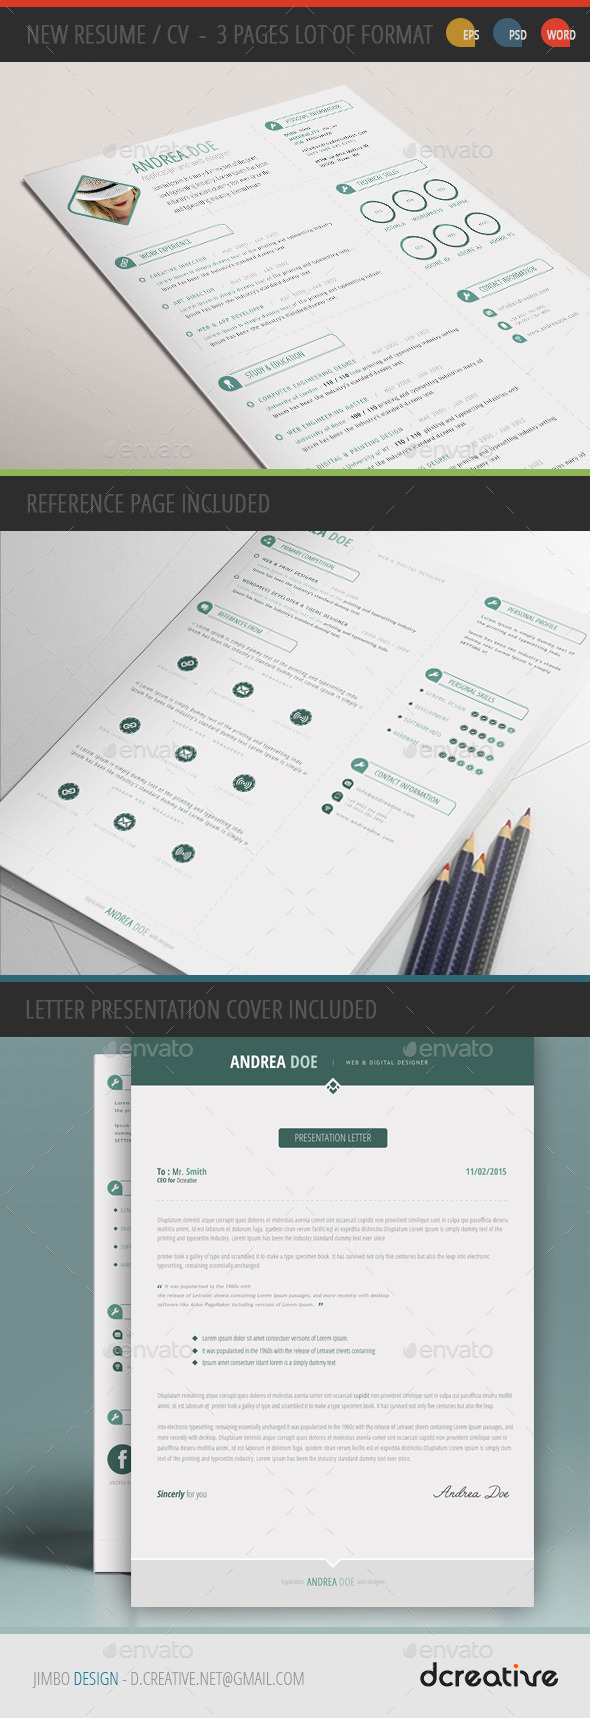 GraphicRiver New Resume CV Template 10984675